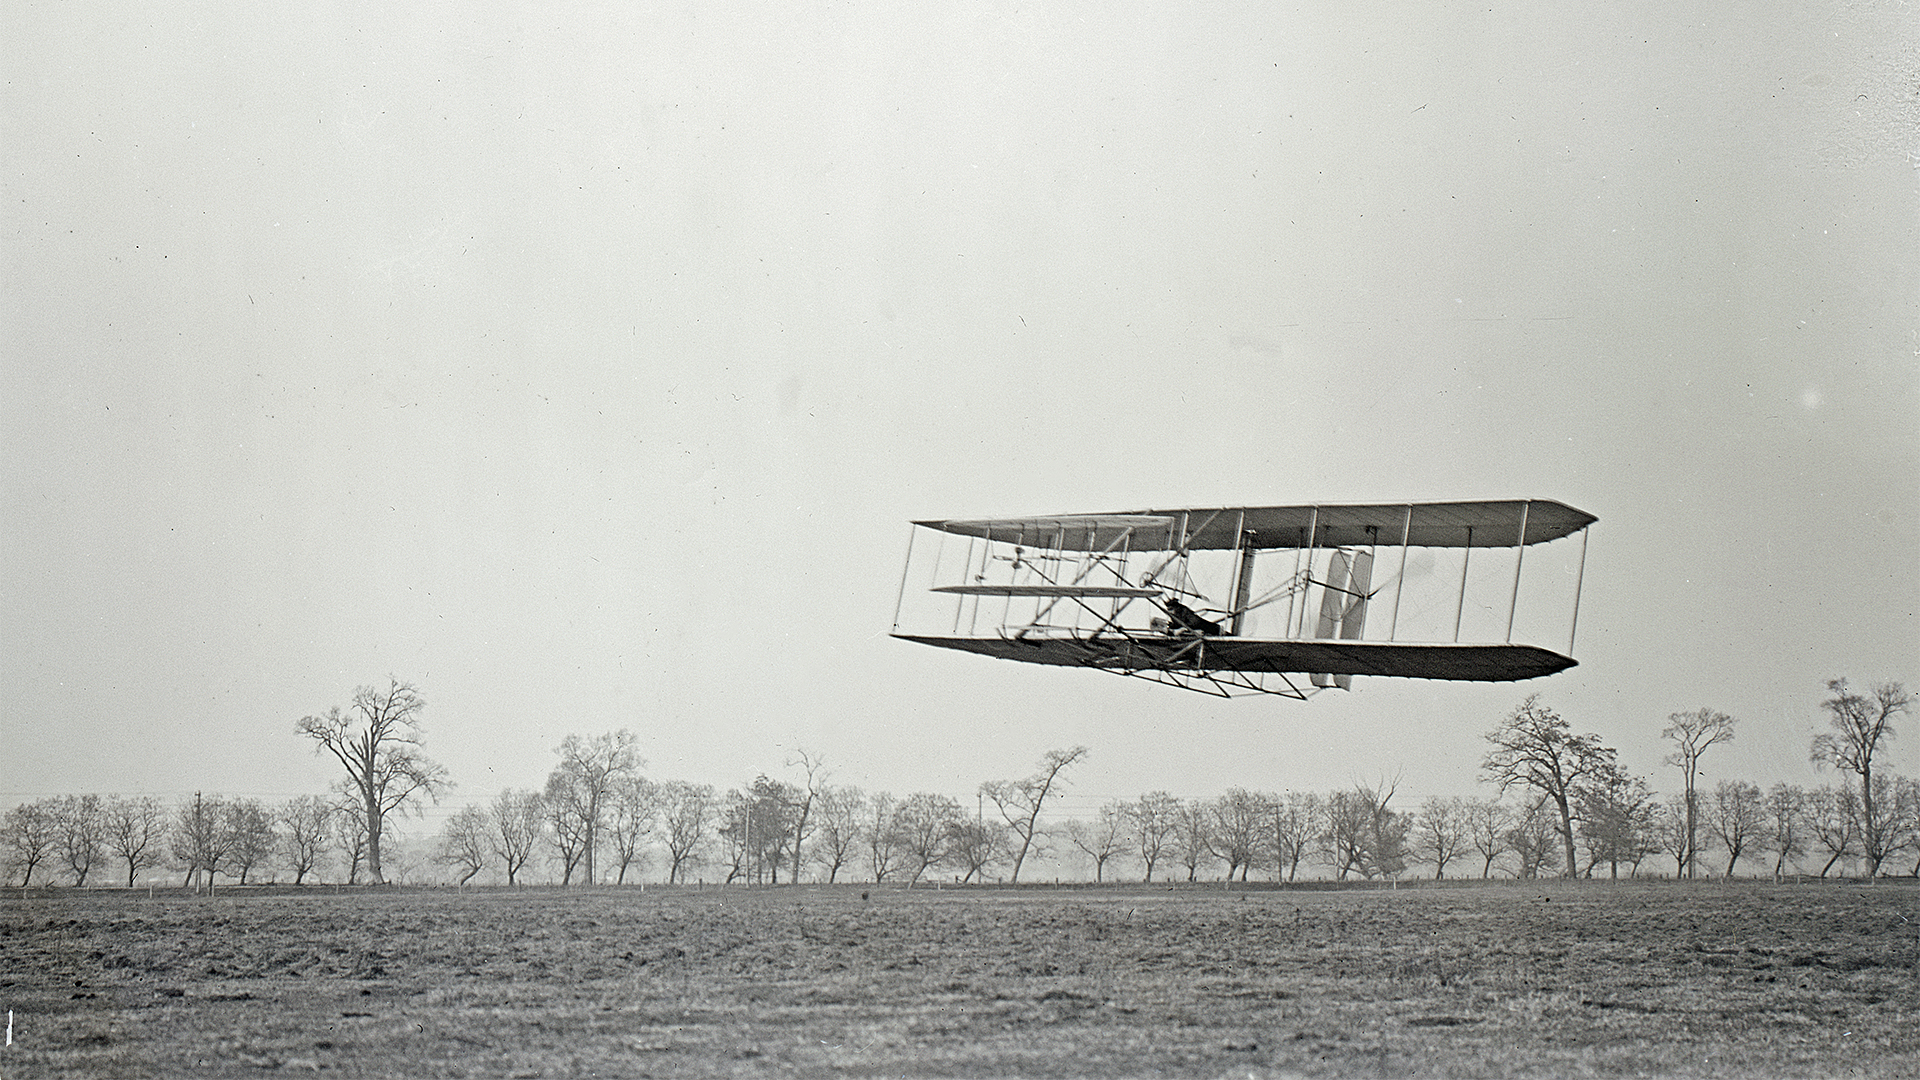 Wright Brothers Flyer II, 1904